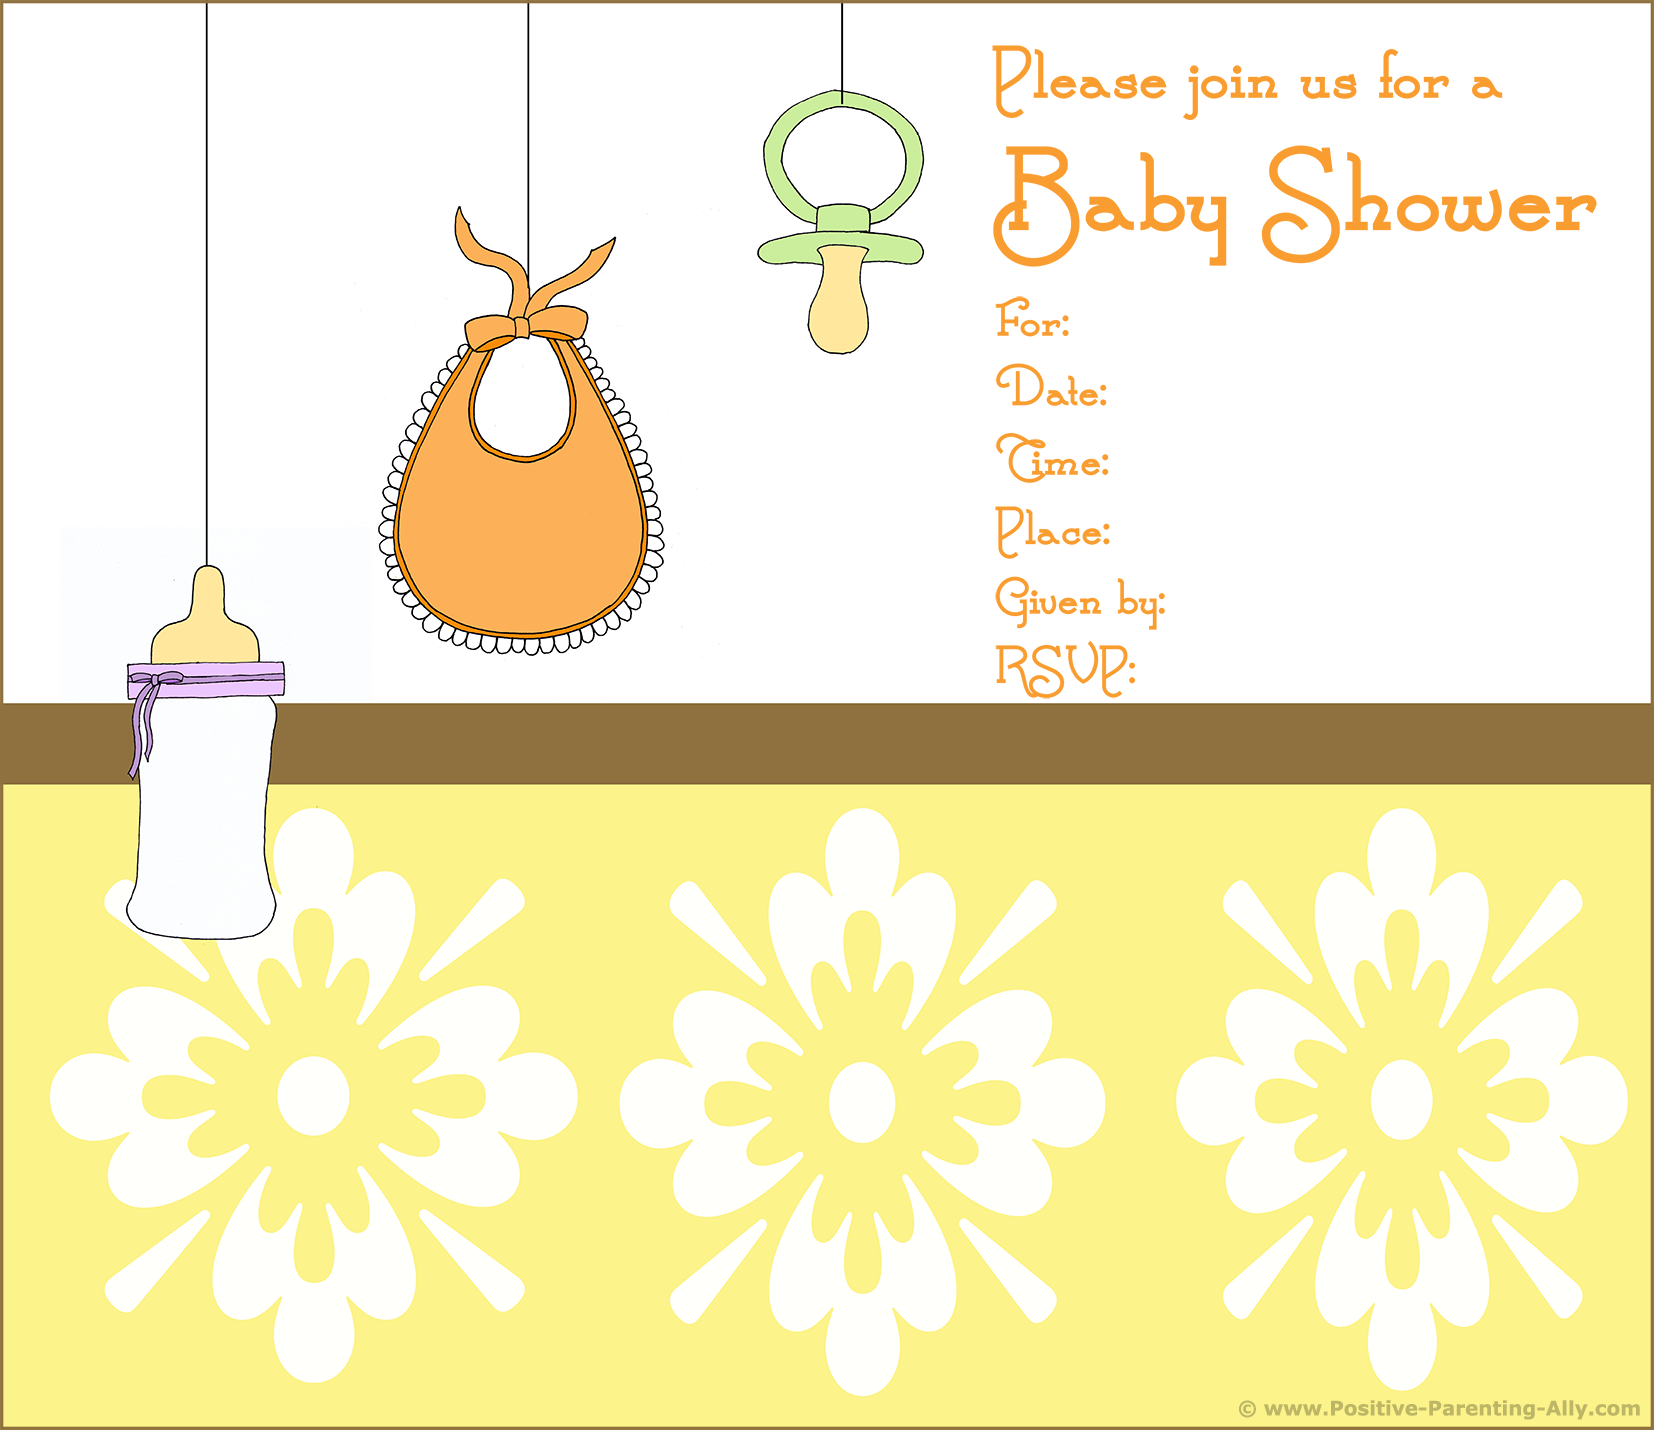 Free printable baby shower invitations with lots of baby gear, pacifier, bib and bottle.